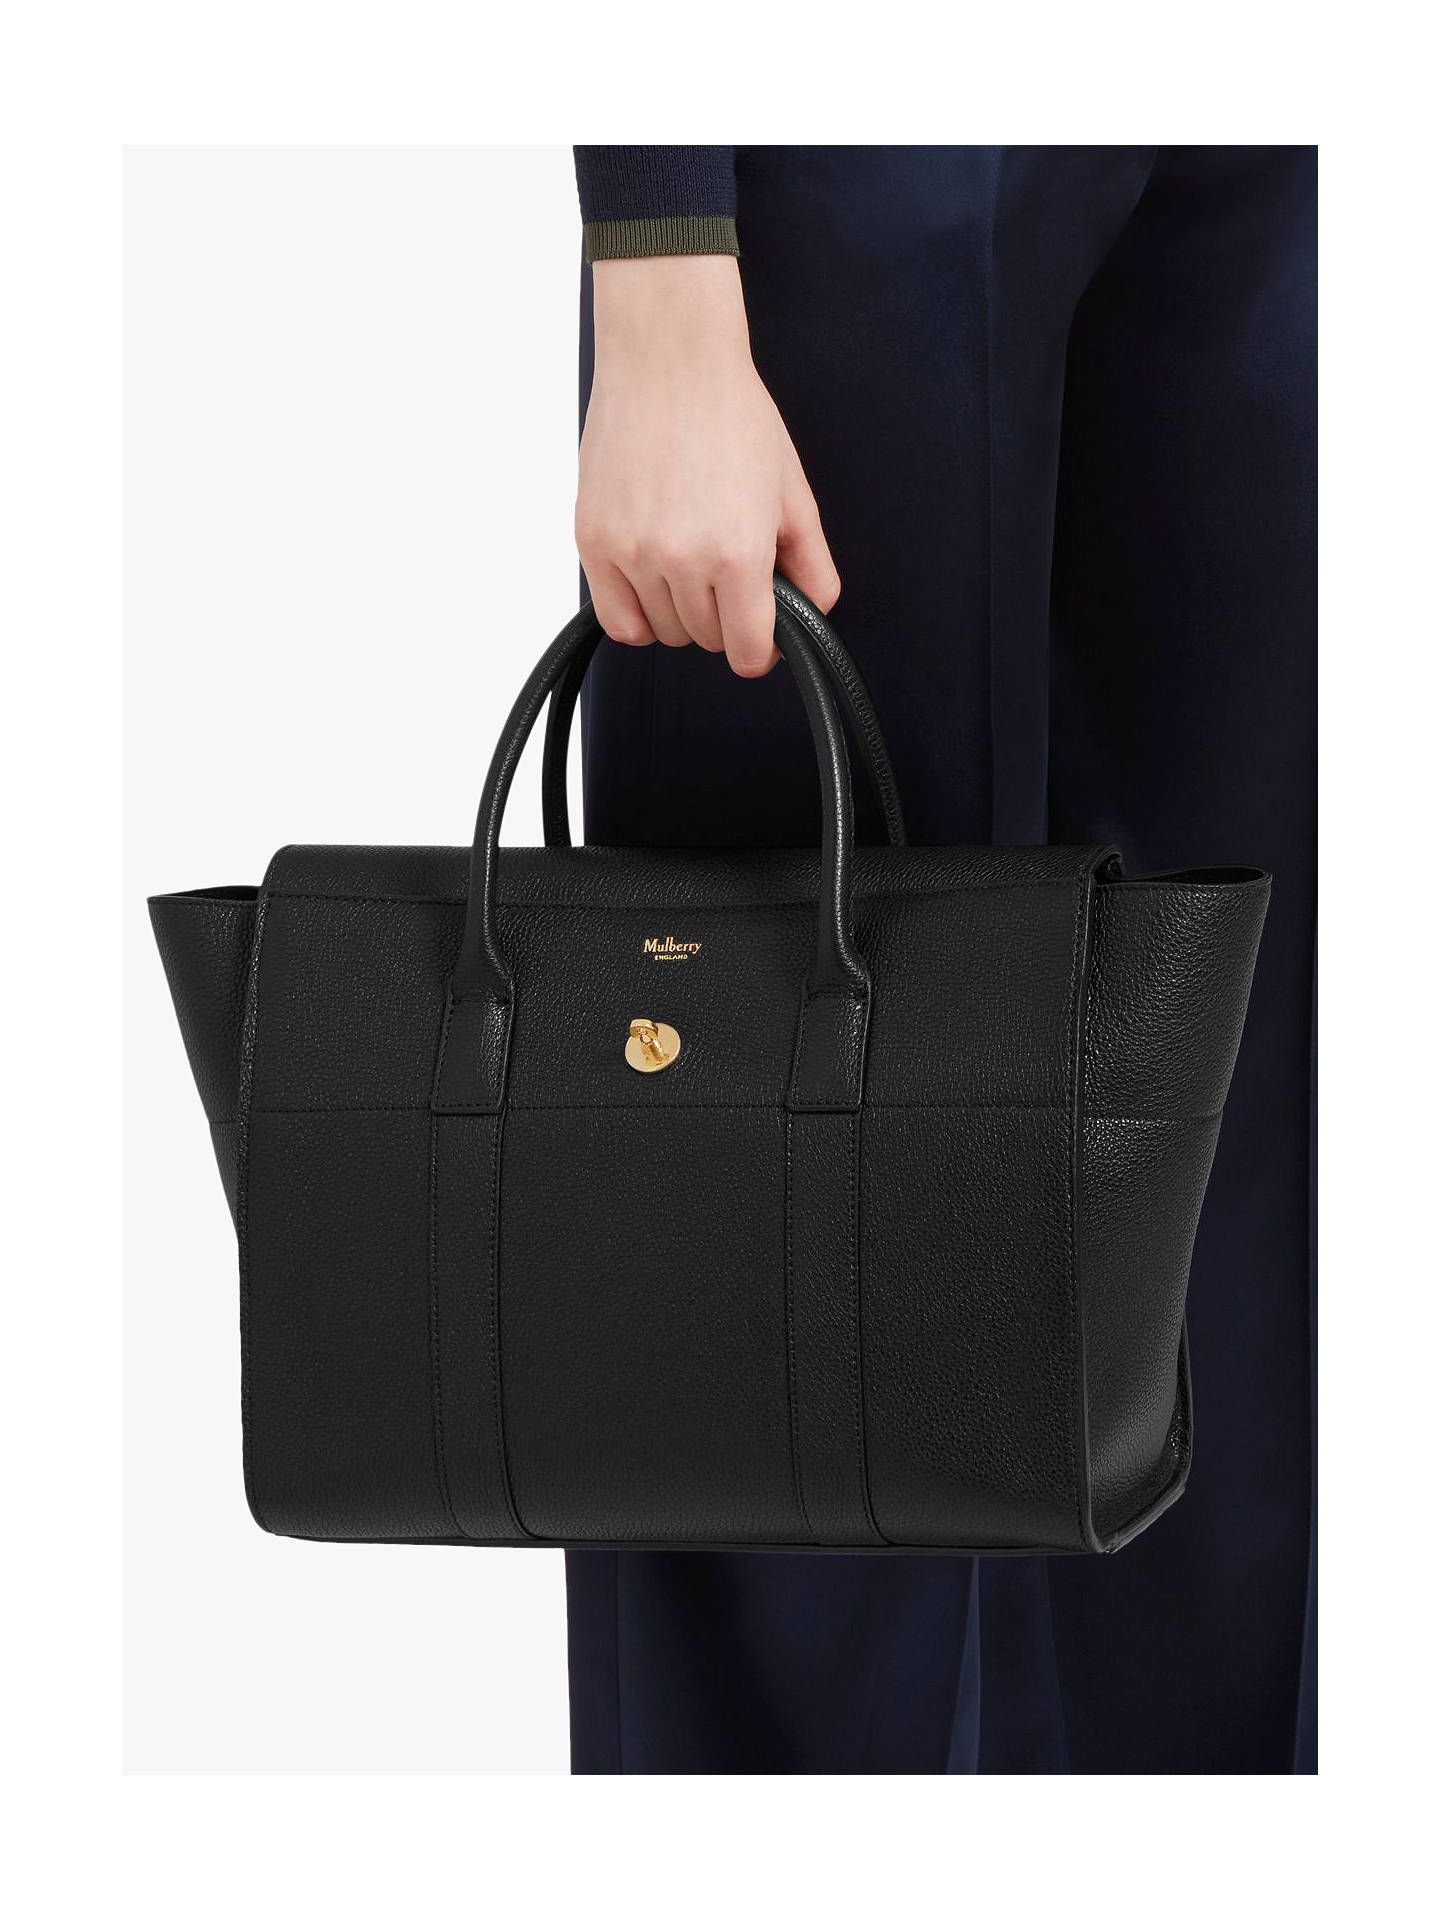 d82e30e55f Buy Mulberry Bayswater with Strap Small Classic Grain Leather Bag, Black  Online at johnlewis.